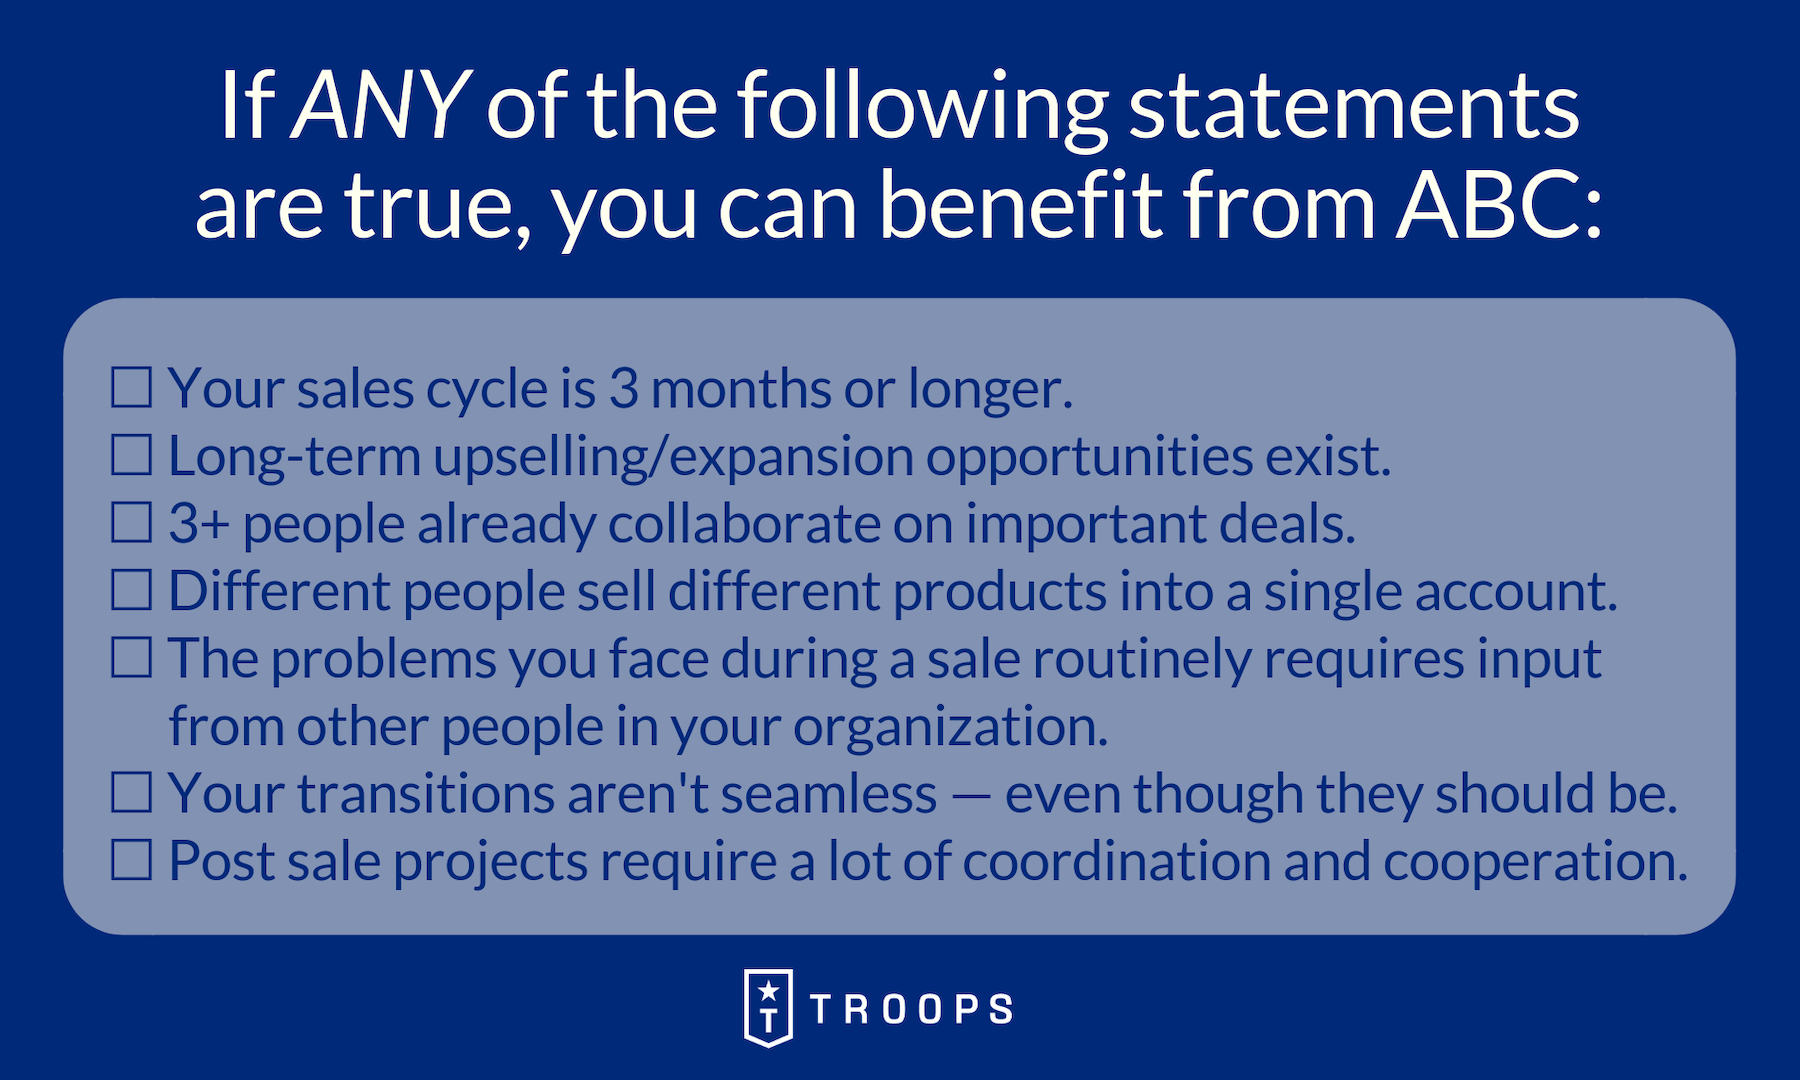 Generally every organization can benefit from Account Based Collaboration.